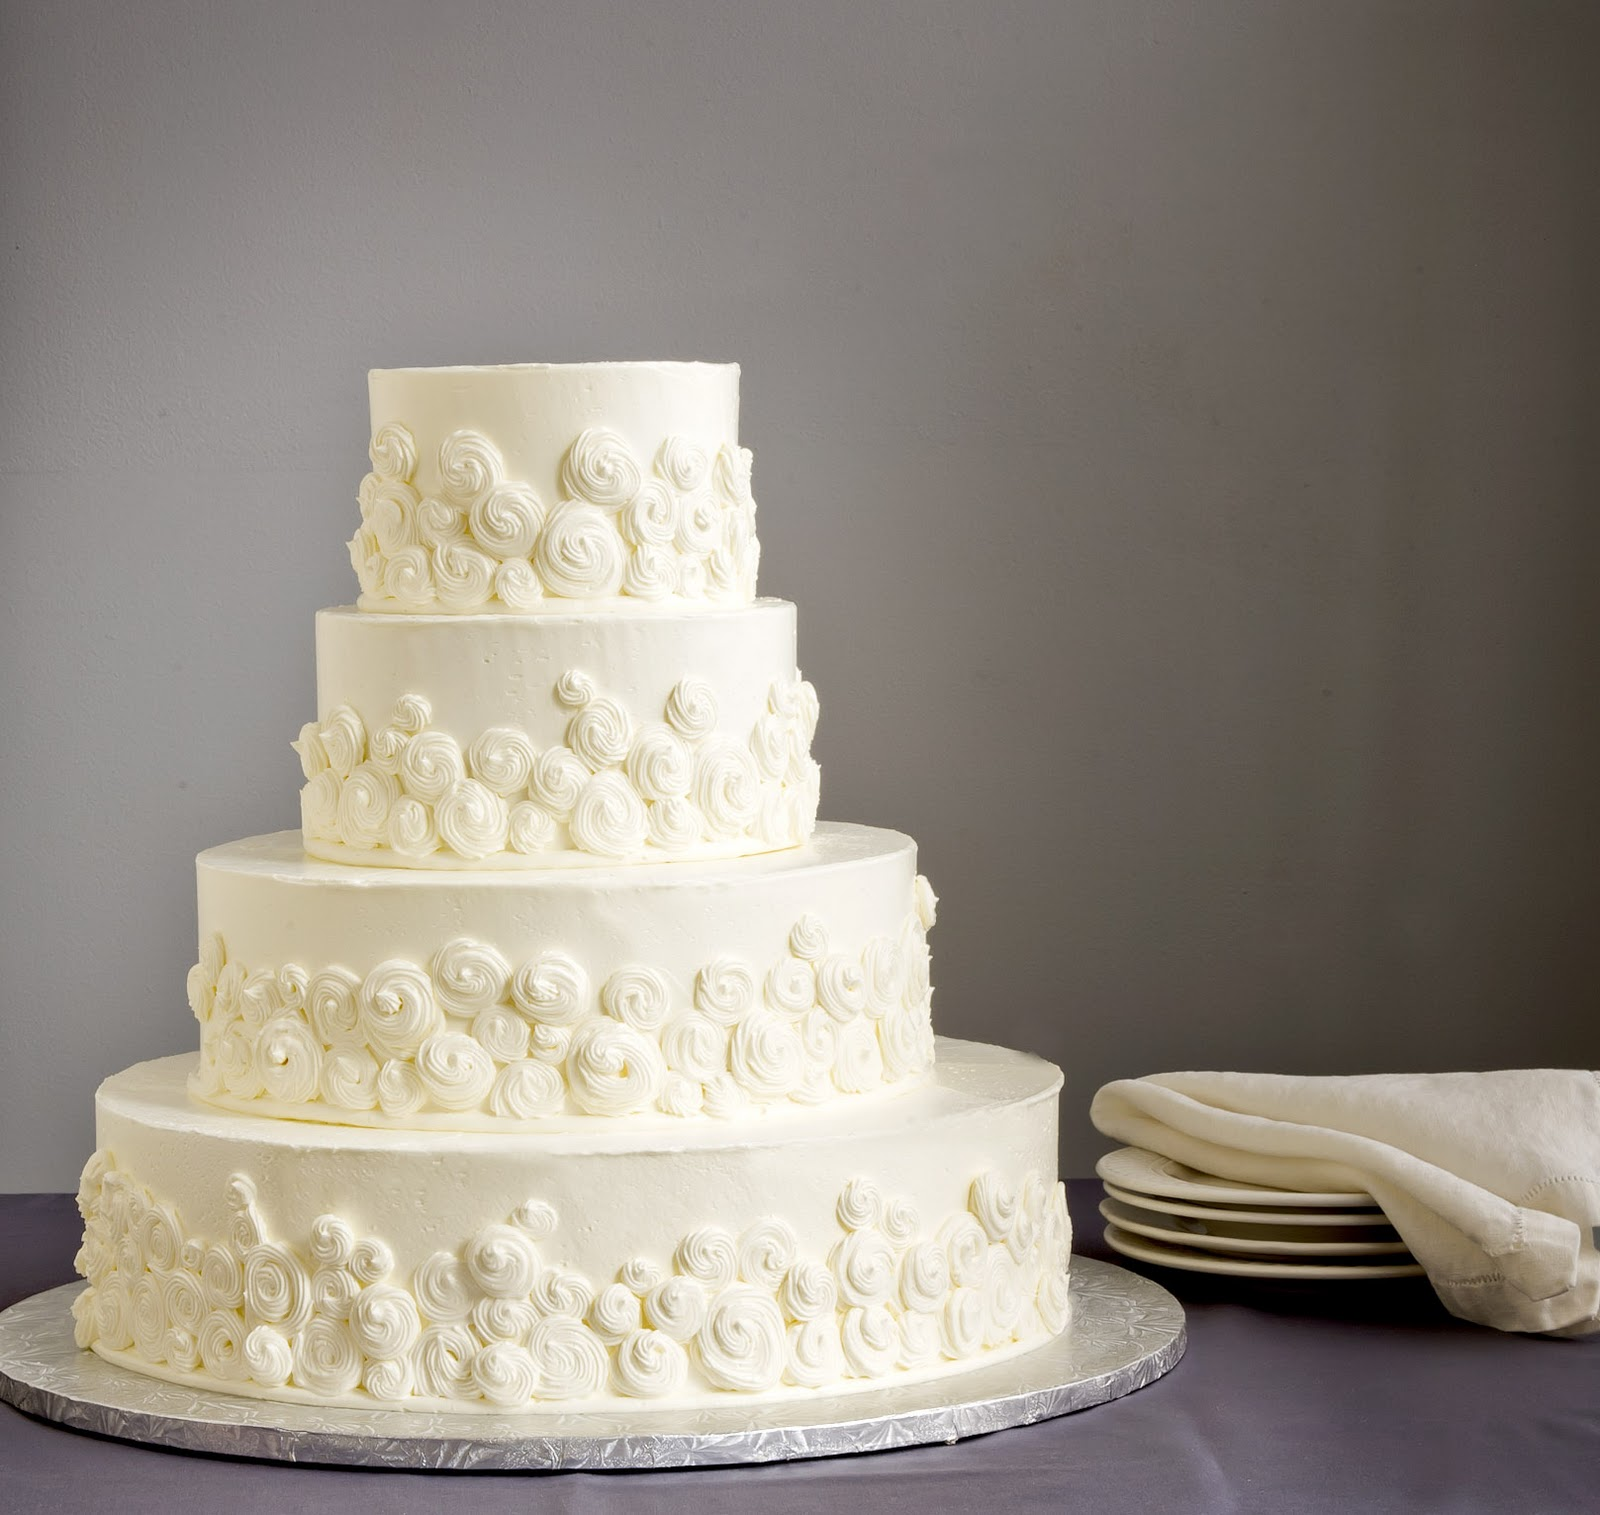 THREE NEW Wedding Cake Ideas